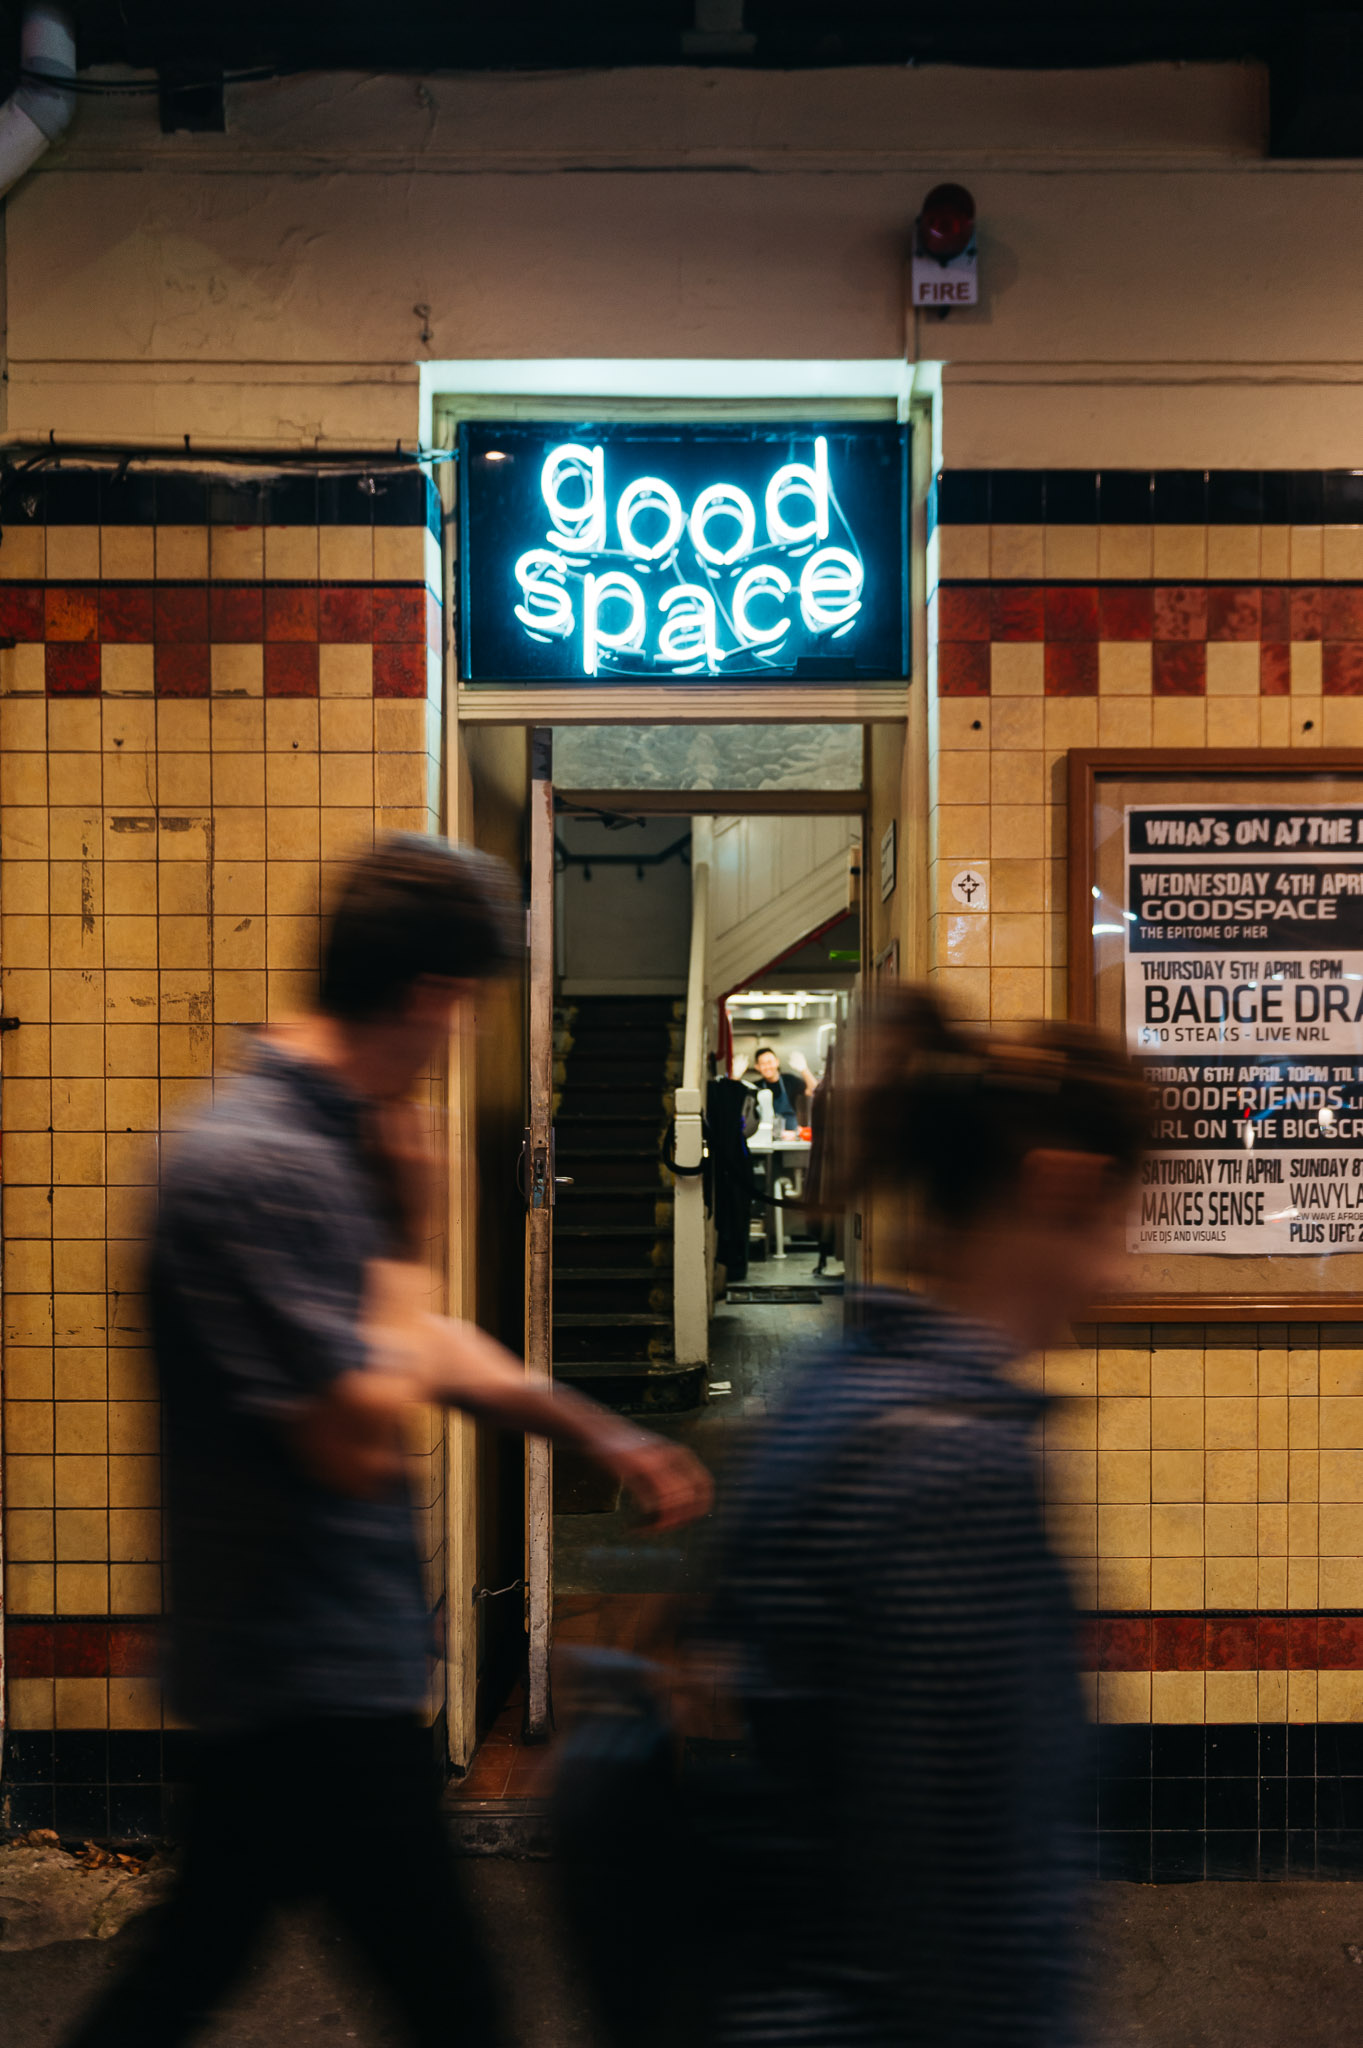 Goodspace Gallery - The Epitome of HER exhibition